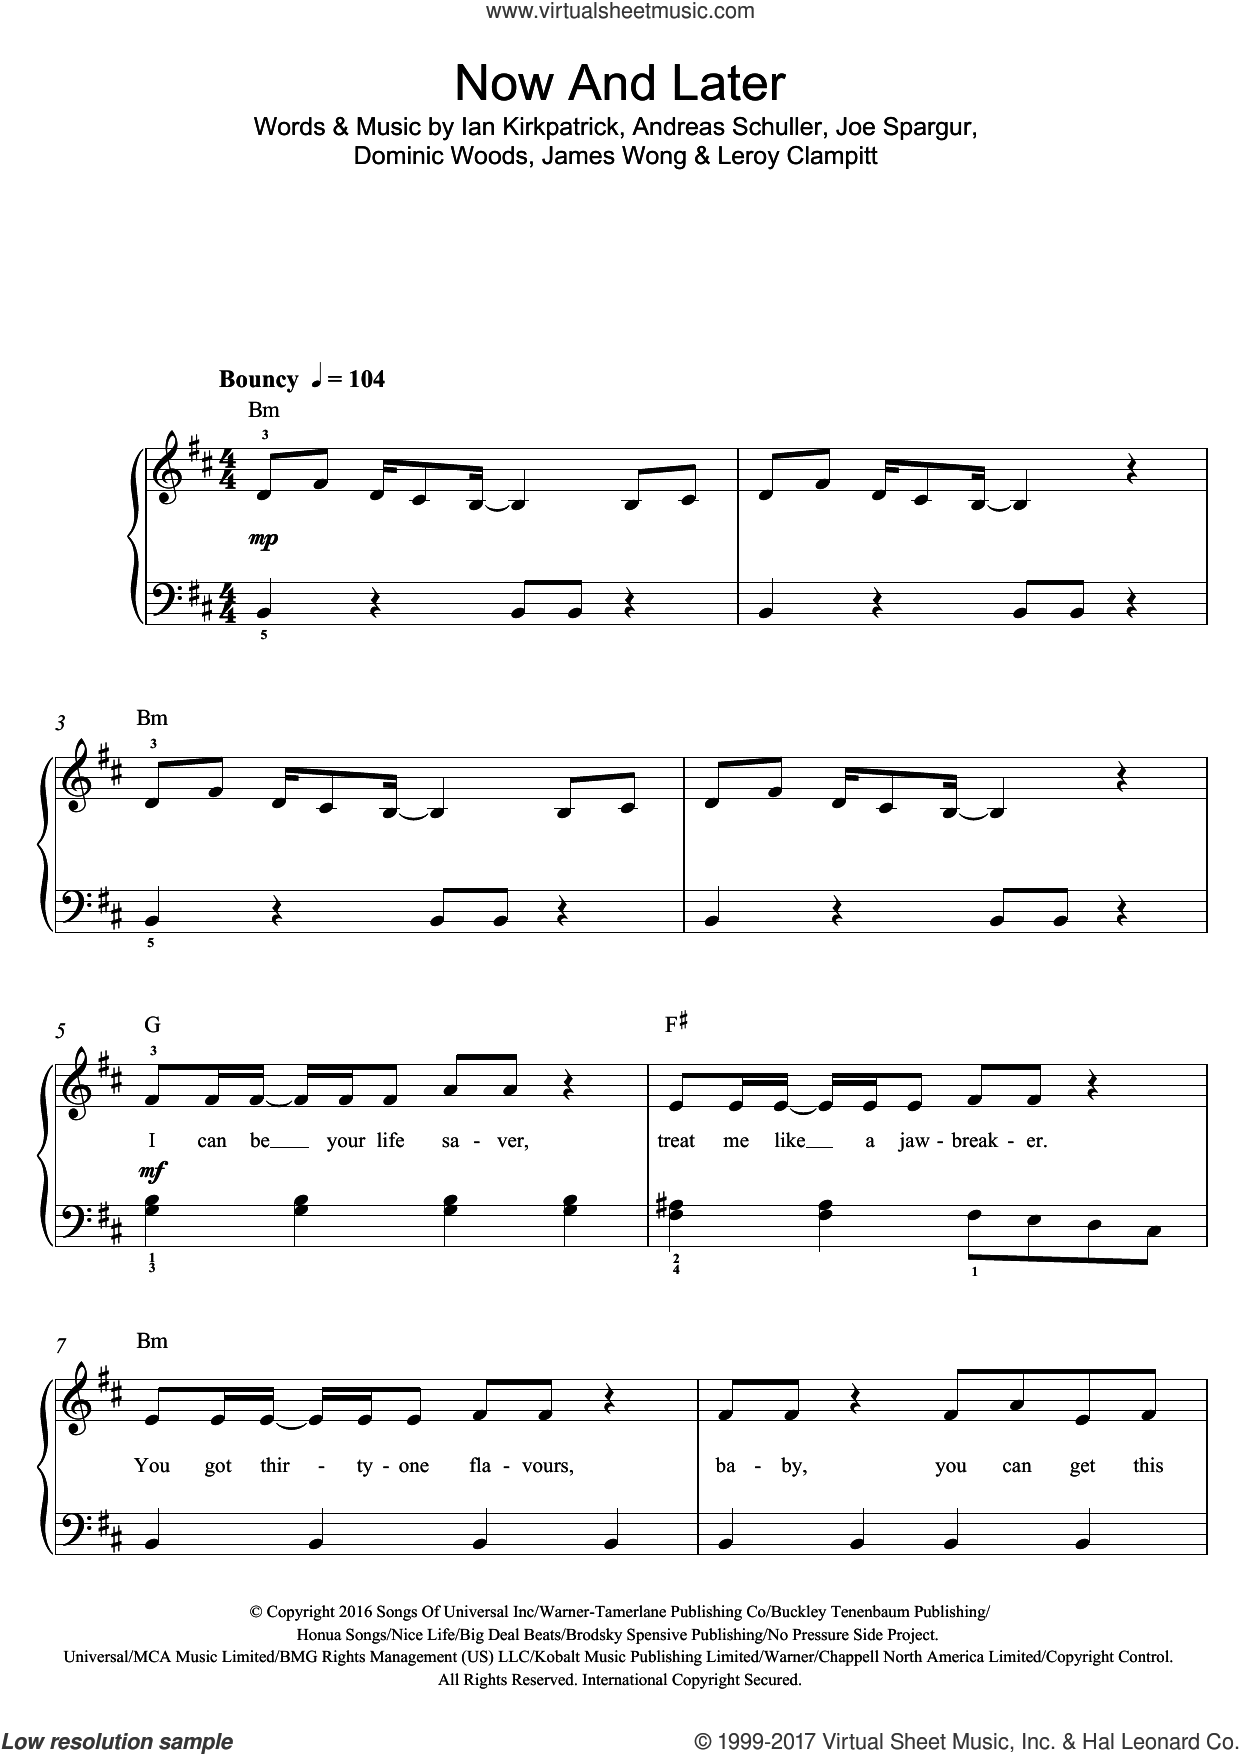 Now And Later sheet music for piano solo (beginners) by Sage the Gemini, Andreas Schuller, Dominic Woods, Ian Kirkpatrick, James Wong, Joe Spargur and Leroy Clampitt, beginner piano (beginners)